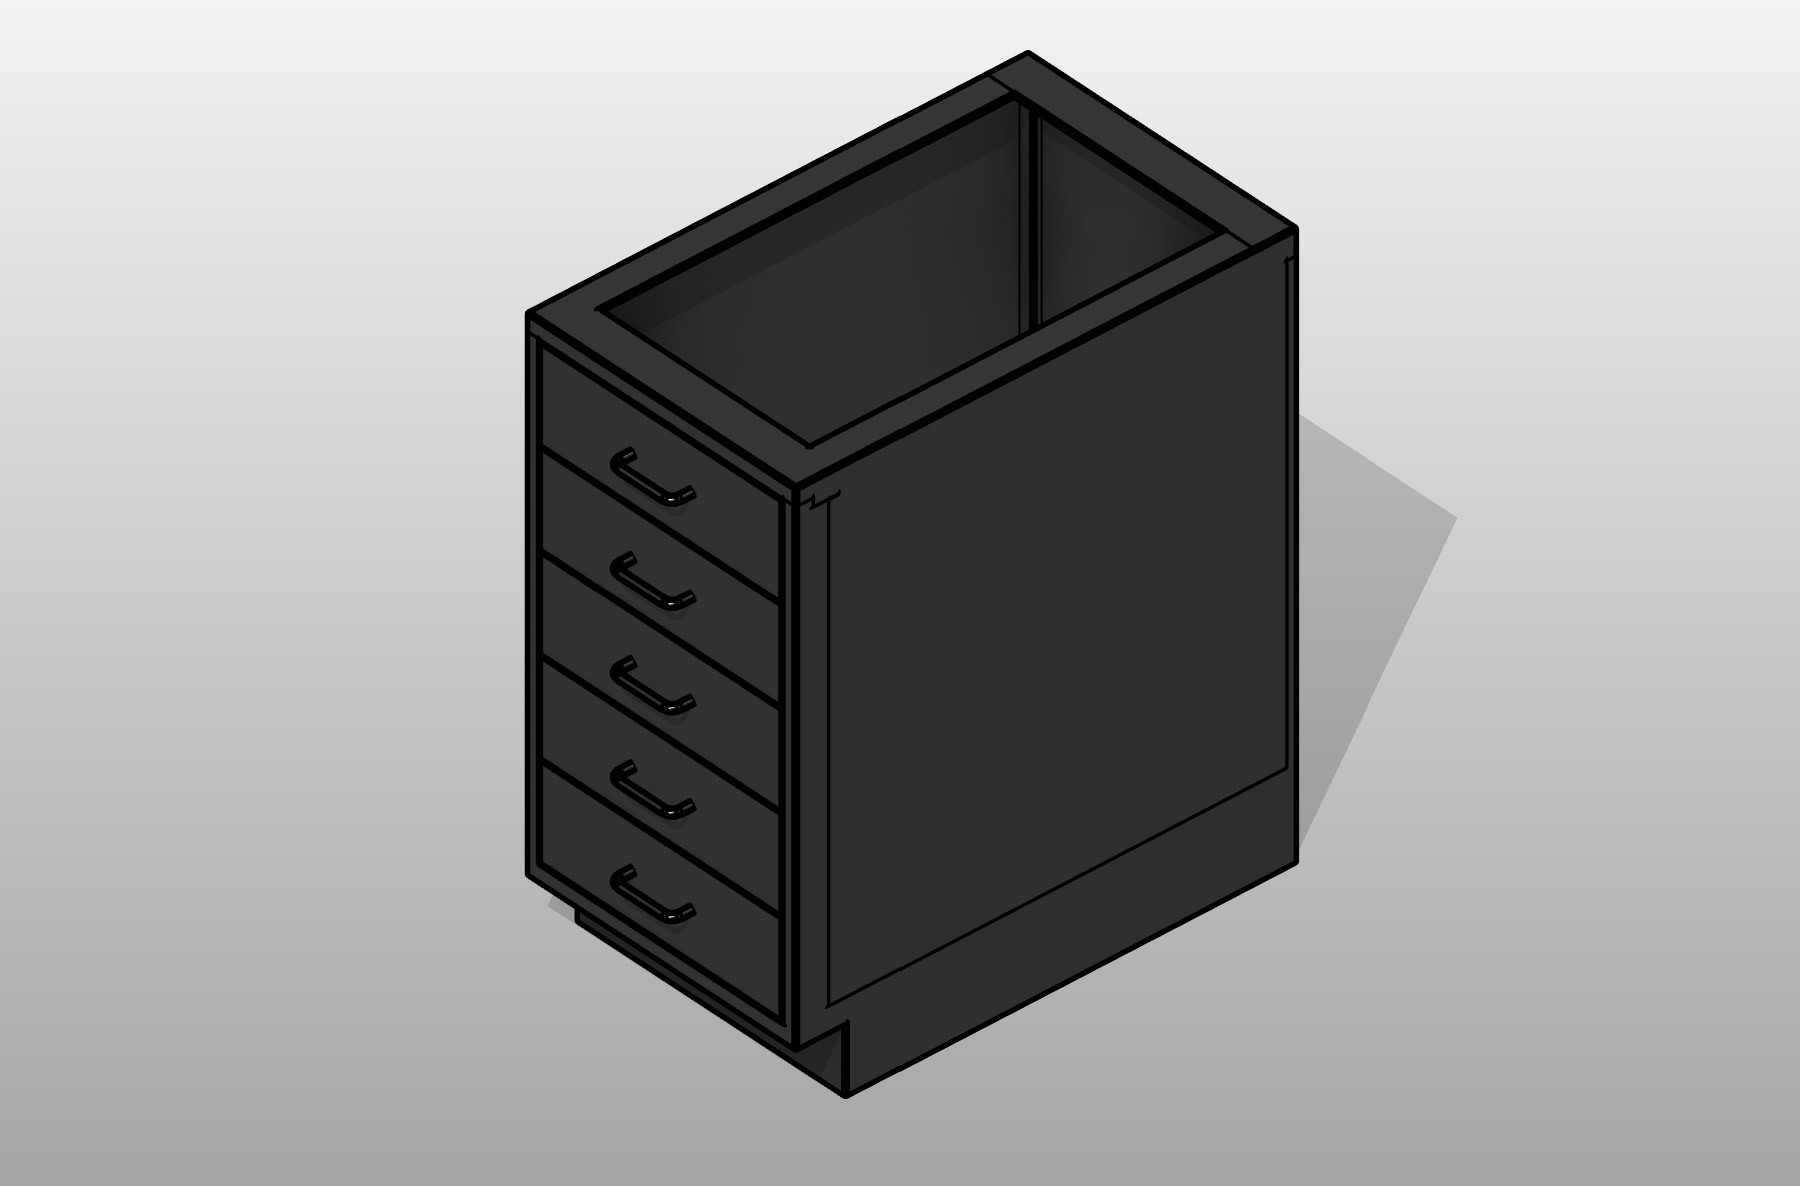 Drawer Bank Stainless Steel Base Cabinet